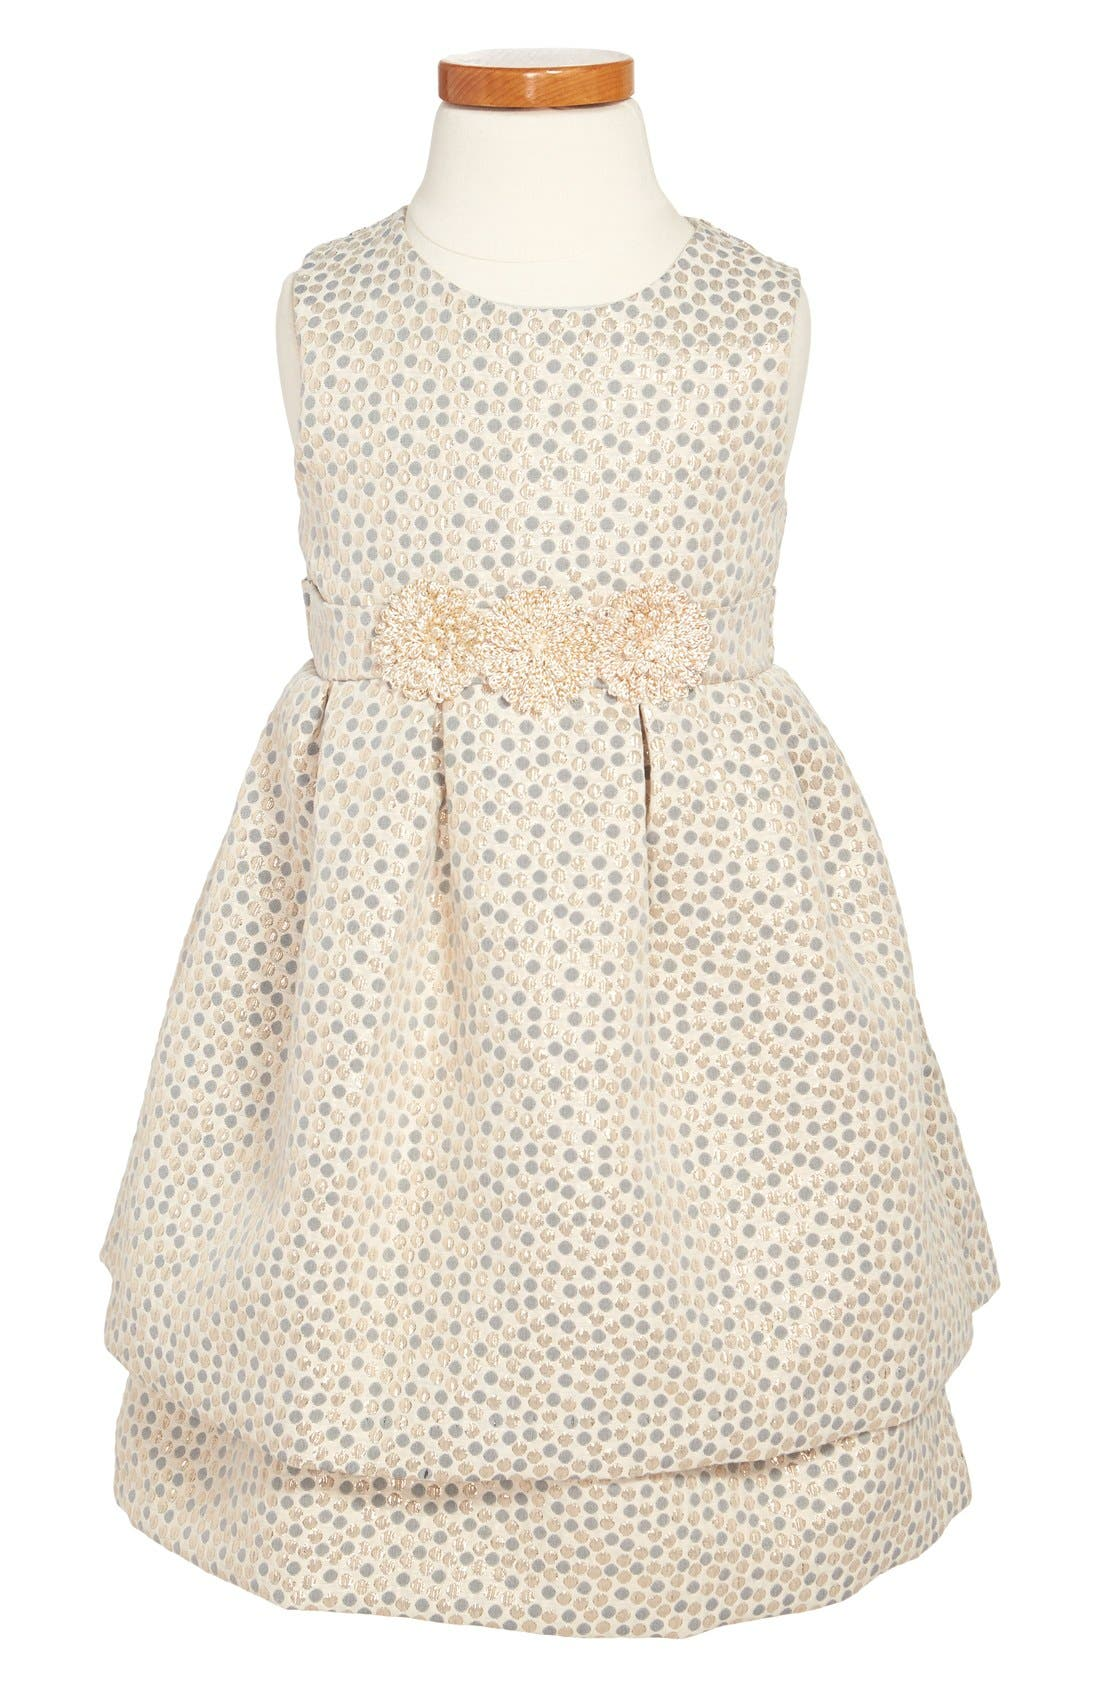 Alternate Image 1 Selected - Pippa & Julie Sleeveless Brocade Dress (Toddler Girls, Little Girls & Big Girls)